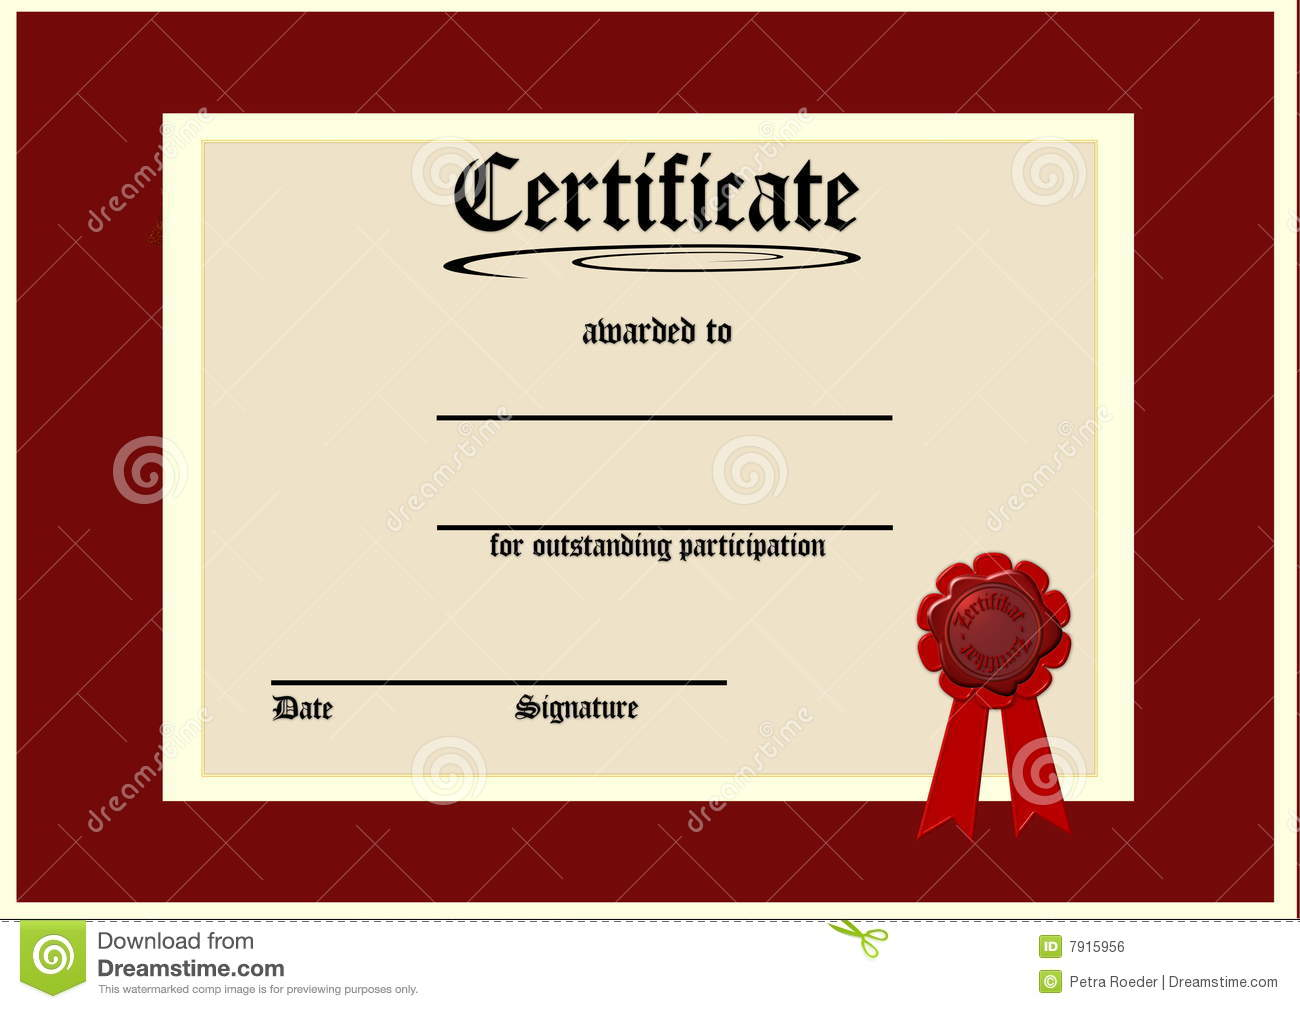 Blank Certificate Royalty Free Stock Image - Image: 7915956